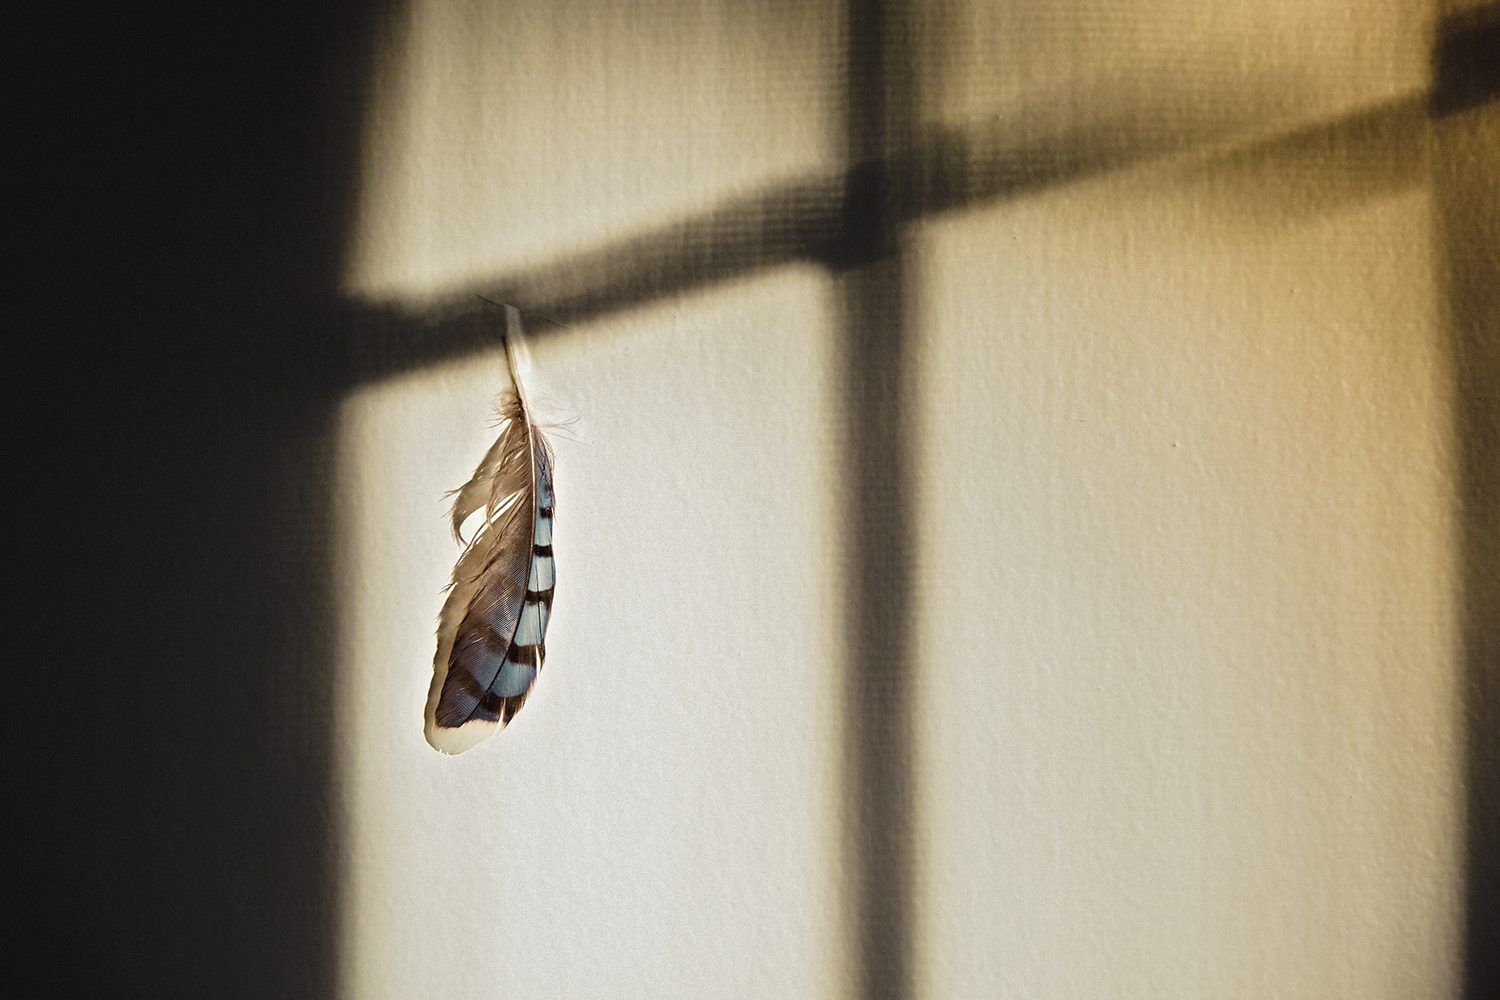 Feather_Morning_Light_0008.jpg